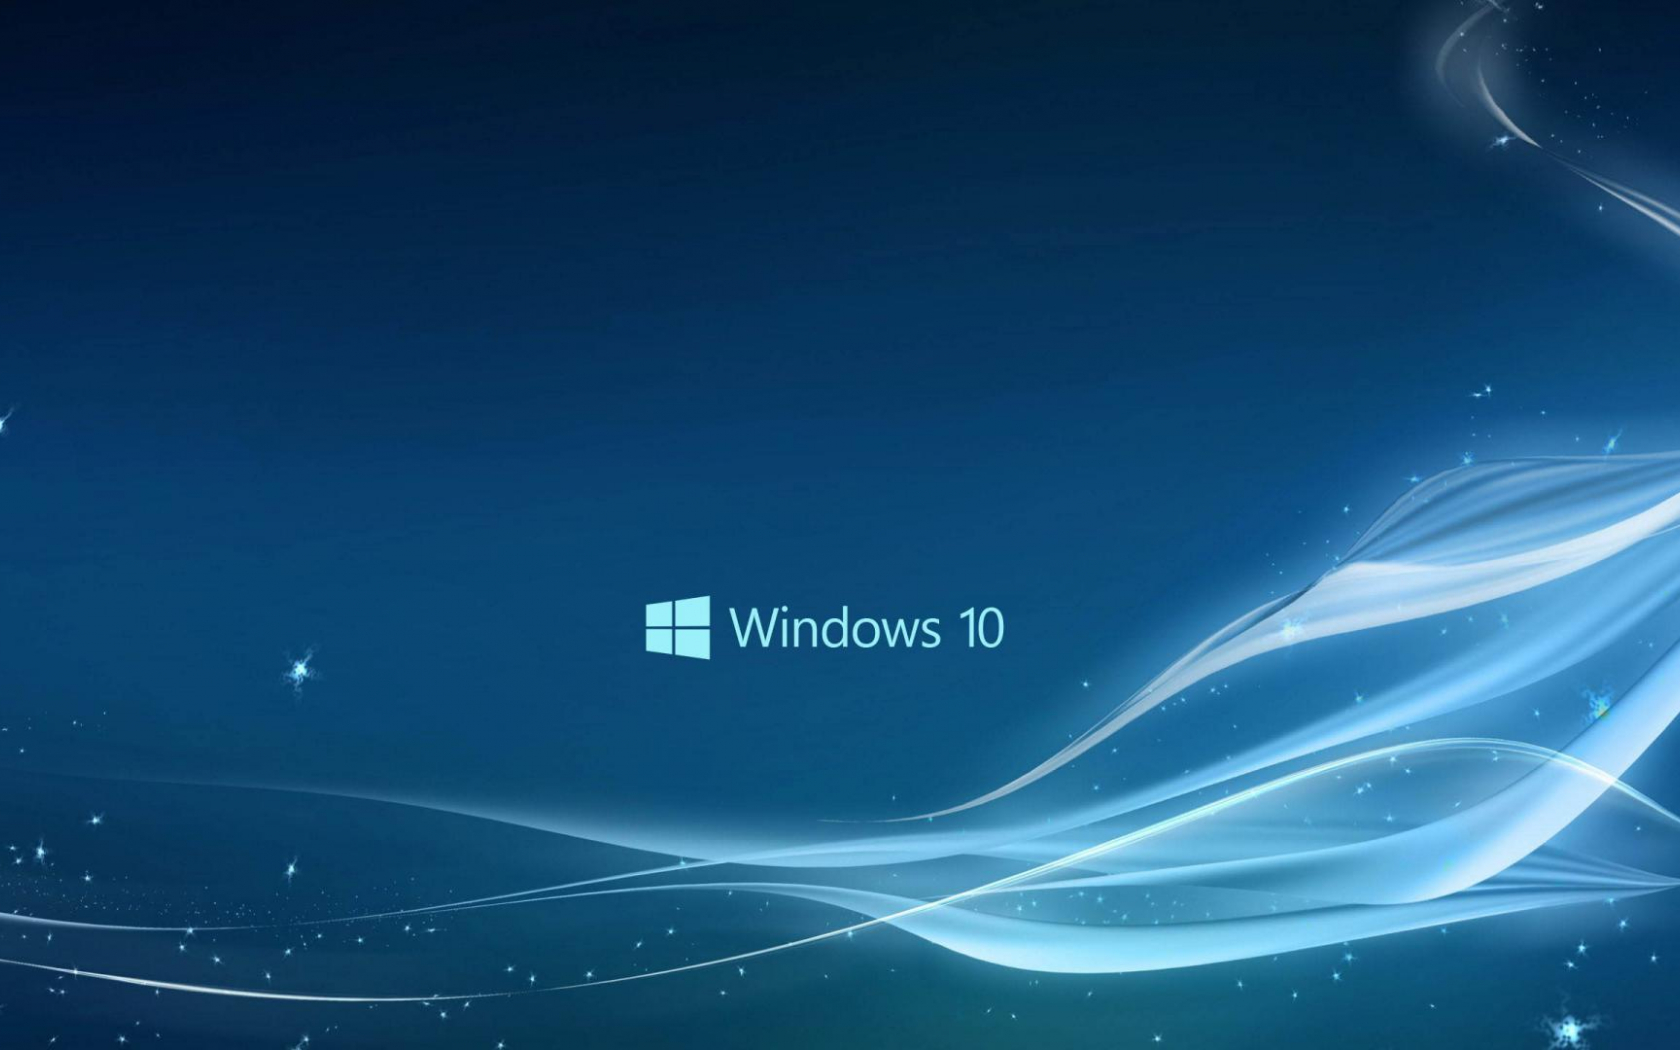 Free Download 10 Wallpaper Wallpaper For Windows 10 Windows 10